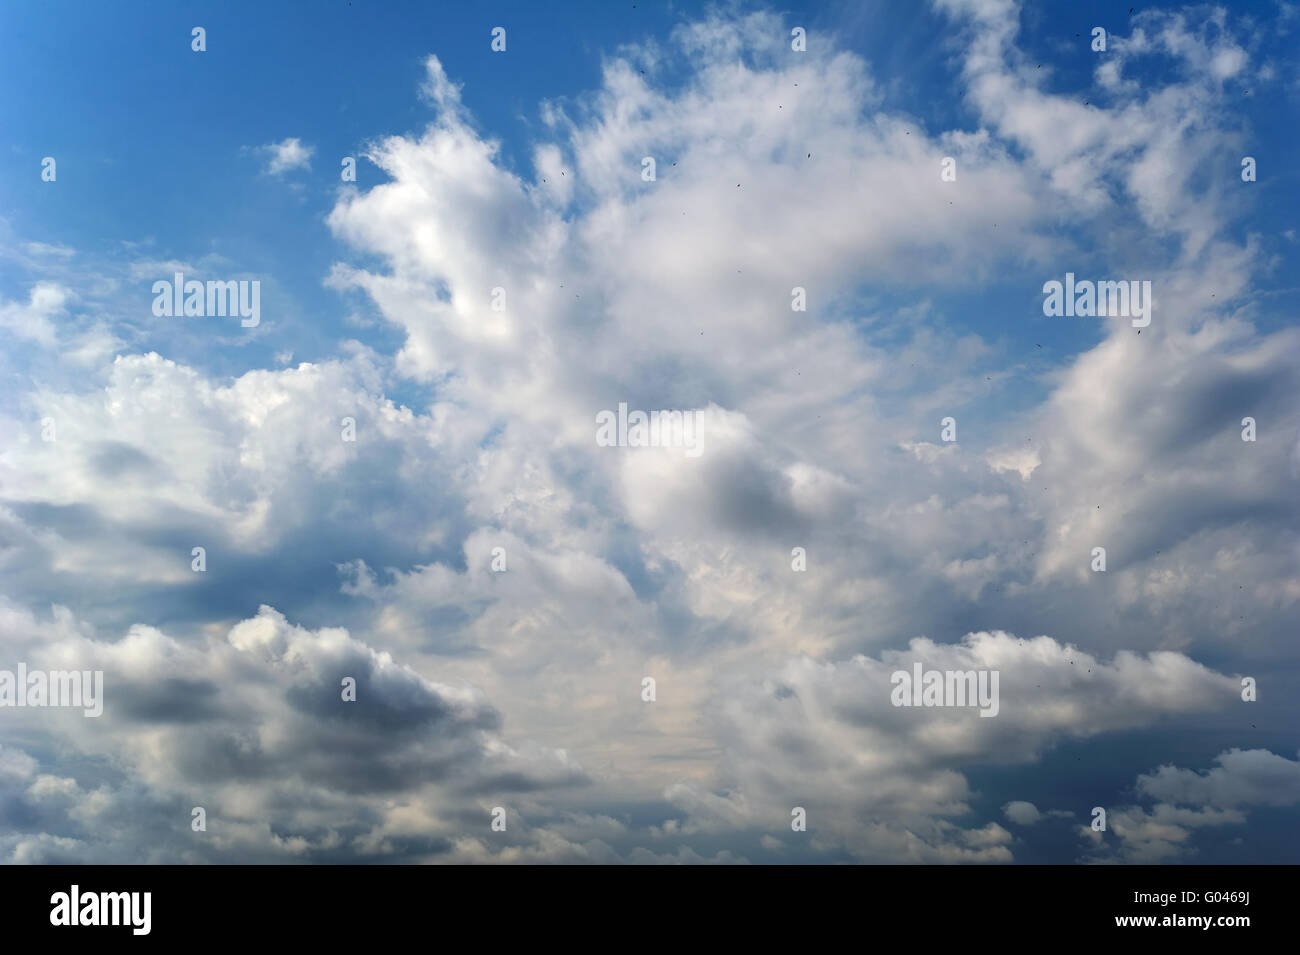 Cloudy sky with flying birds - Stock Image